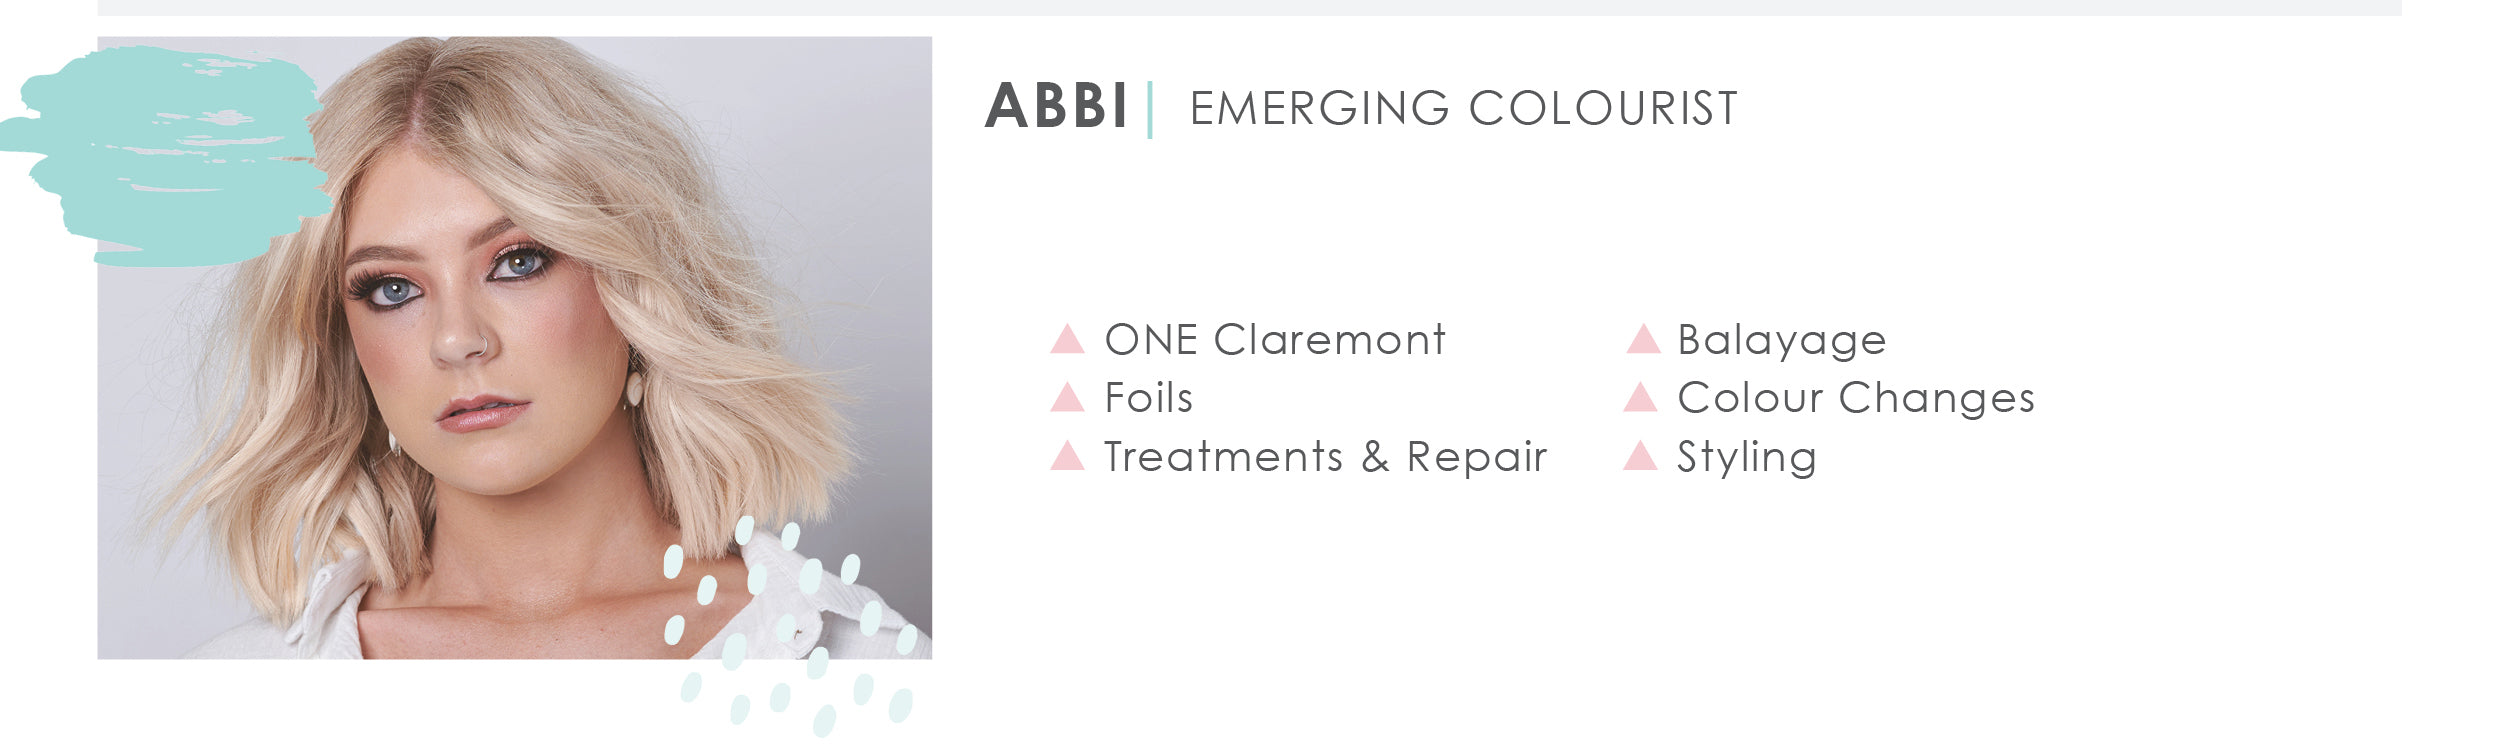 ABOUT Abbi ONE Claremont Hair Salon Emerging Colourist Perth